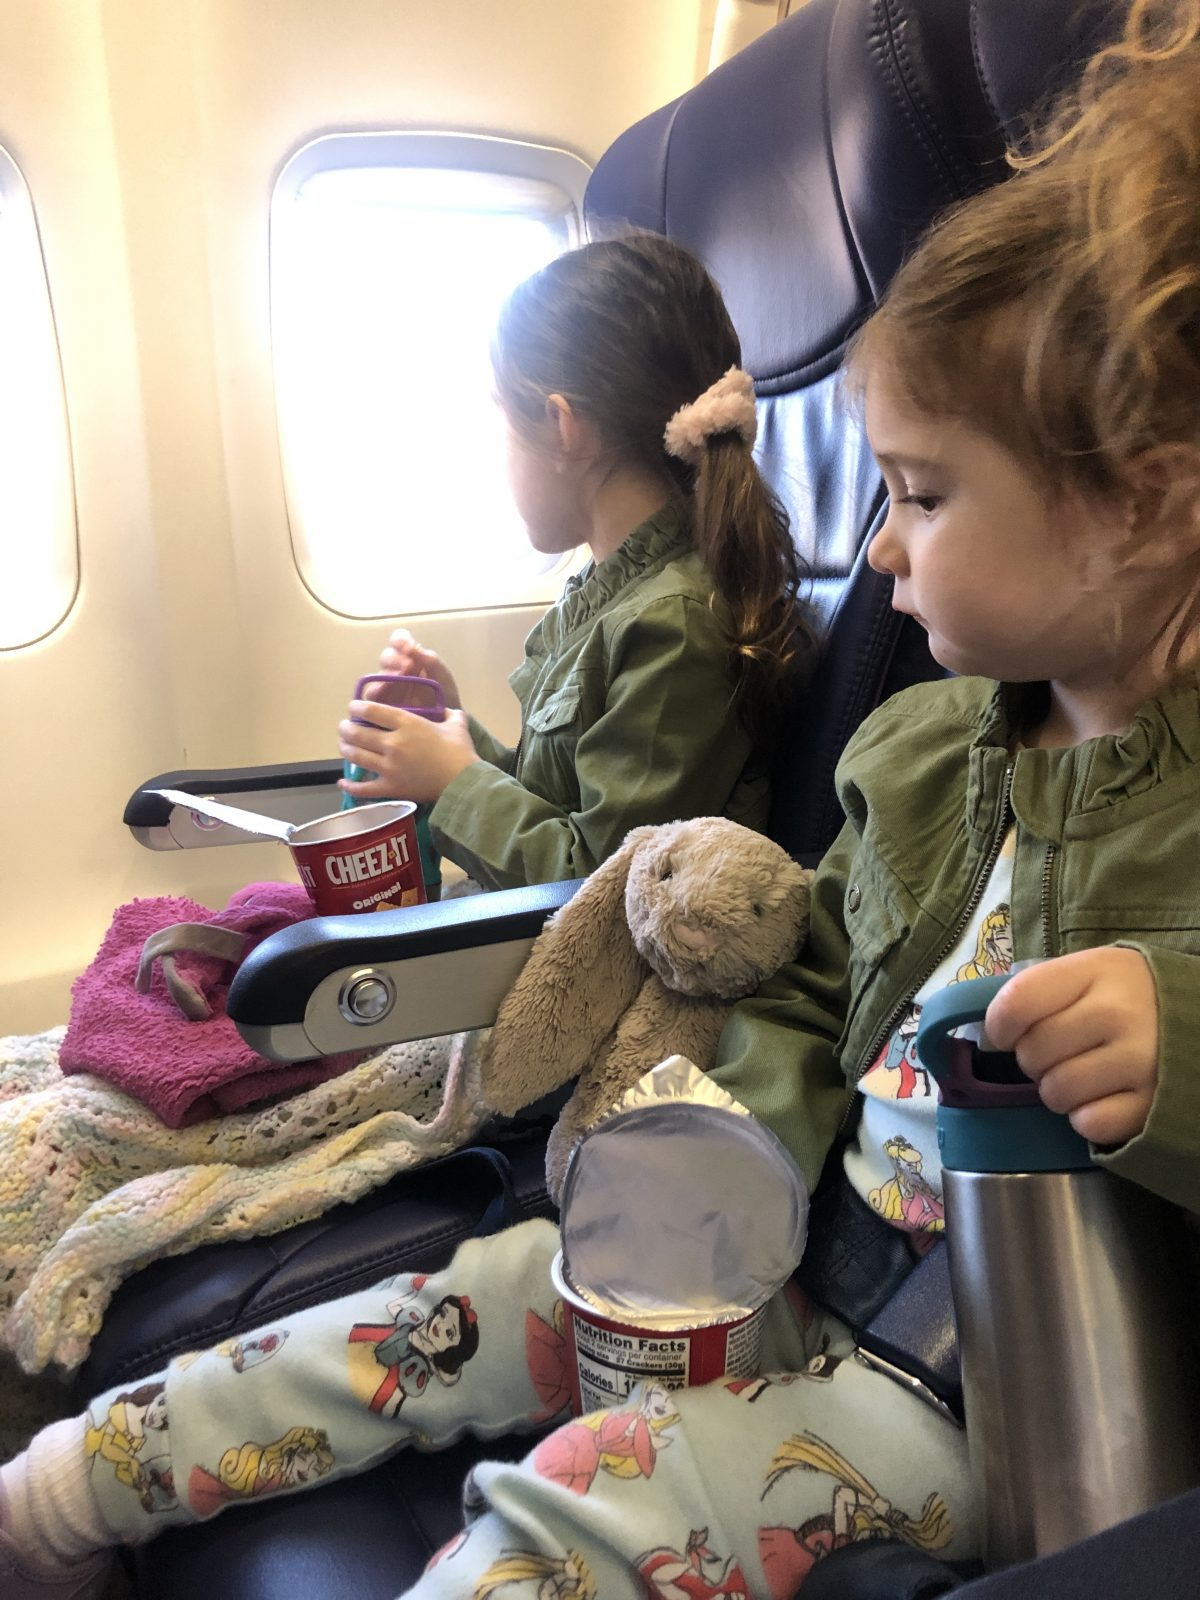 Toddlers and Snacks on a Plane